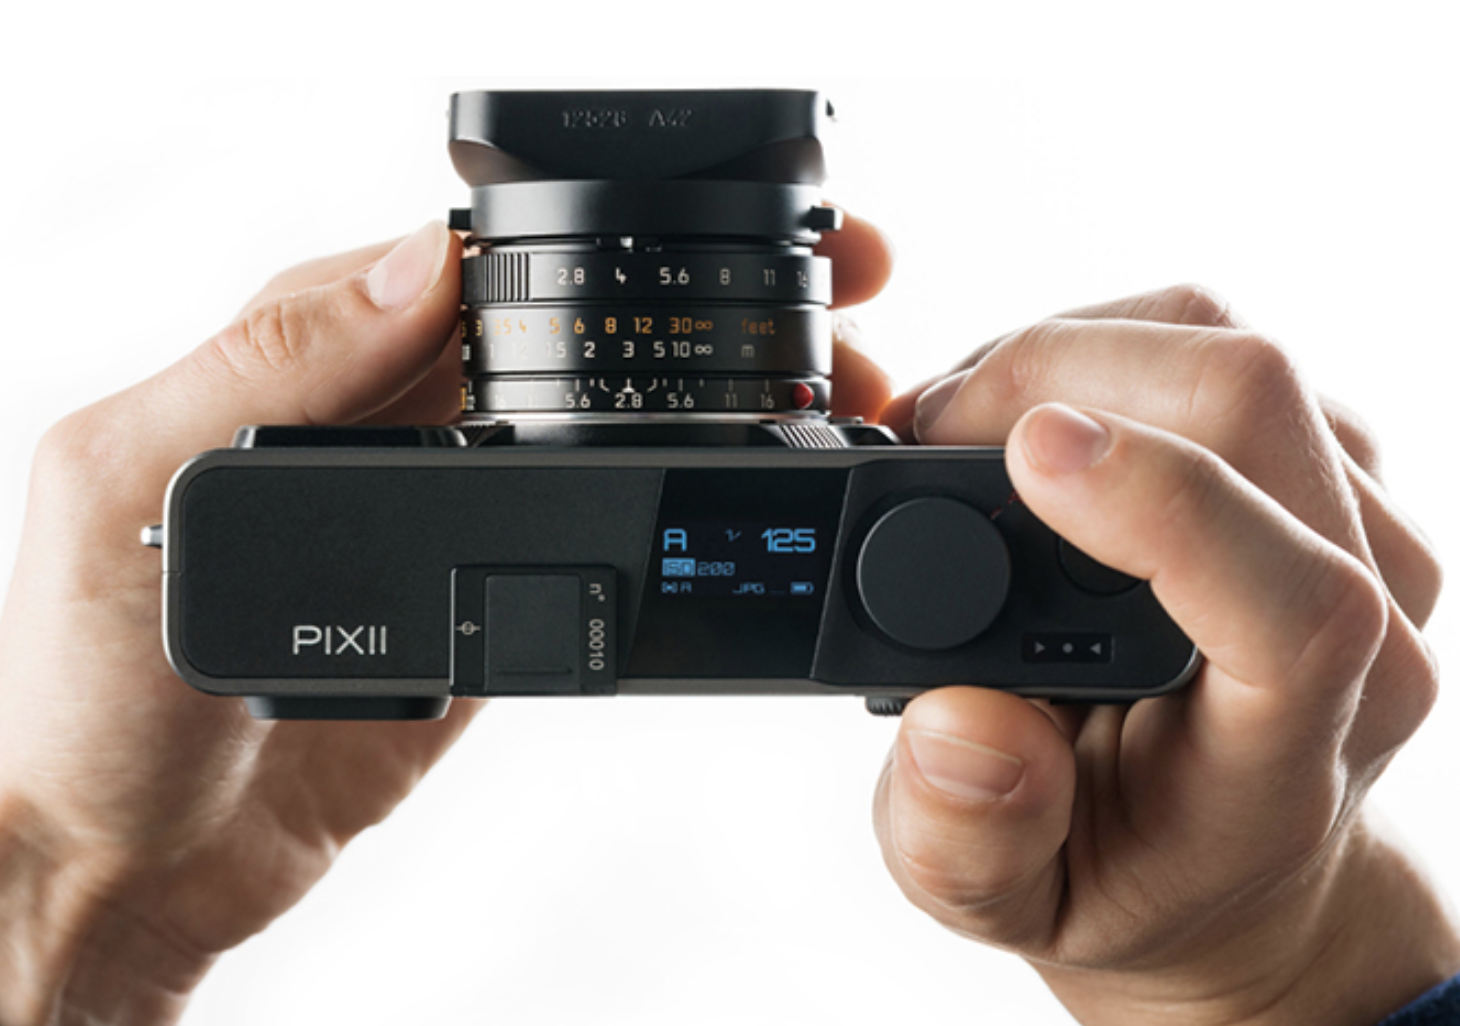 Minimalist controls, a useful status screen and a compact body make for a neat combination with smaller M lenses (all images from the Pixii website)